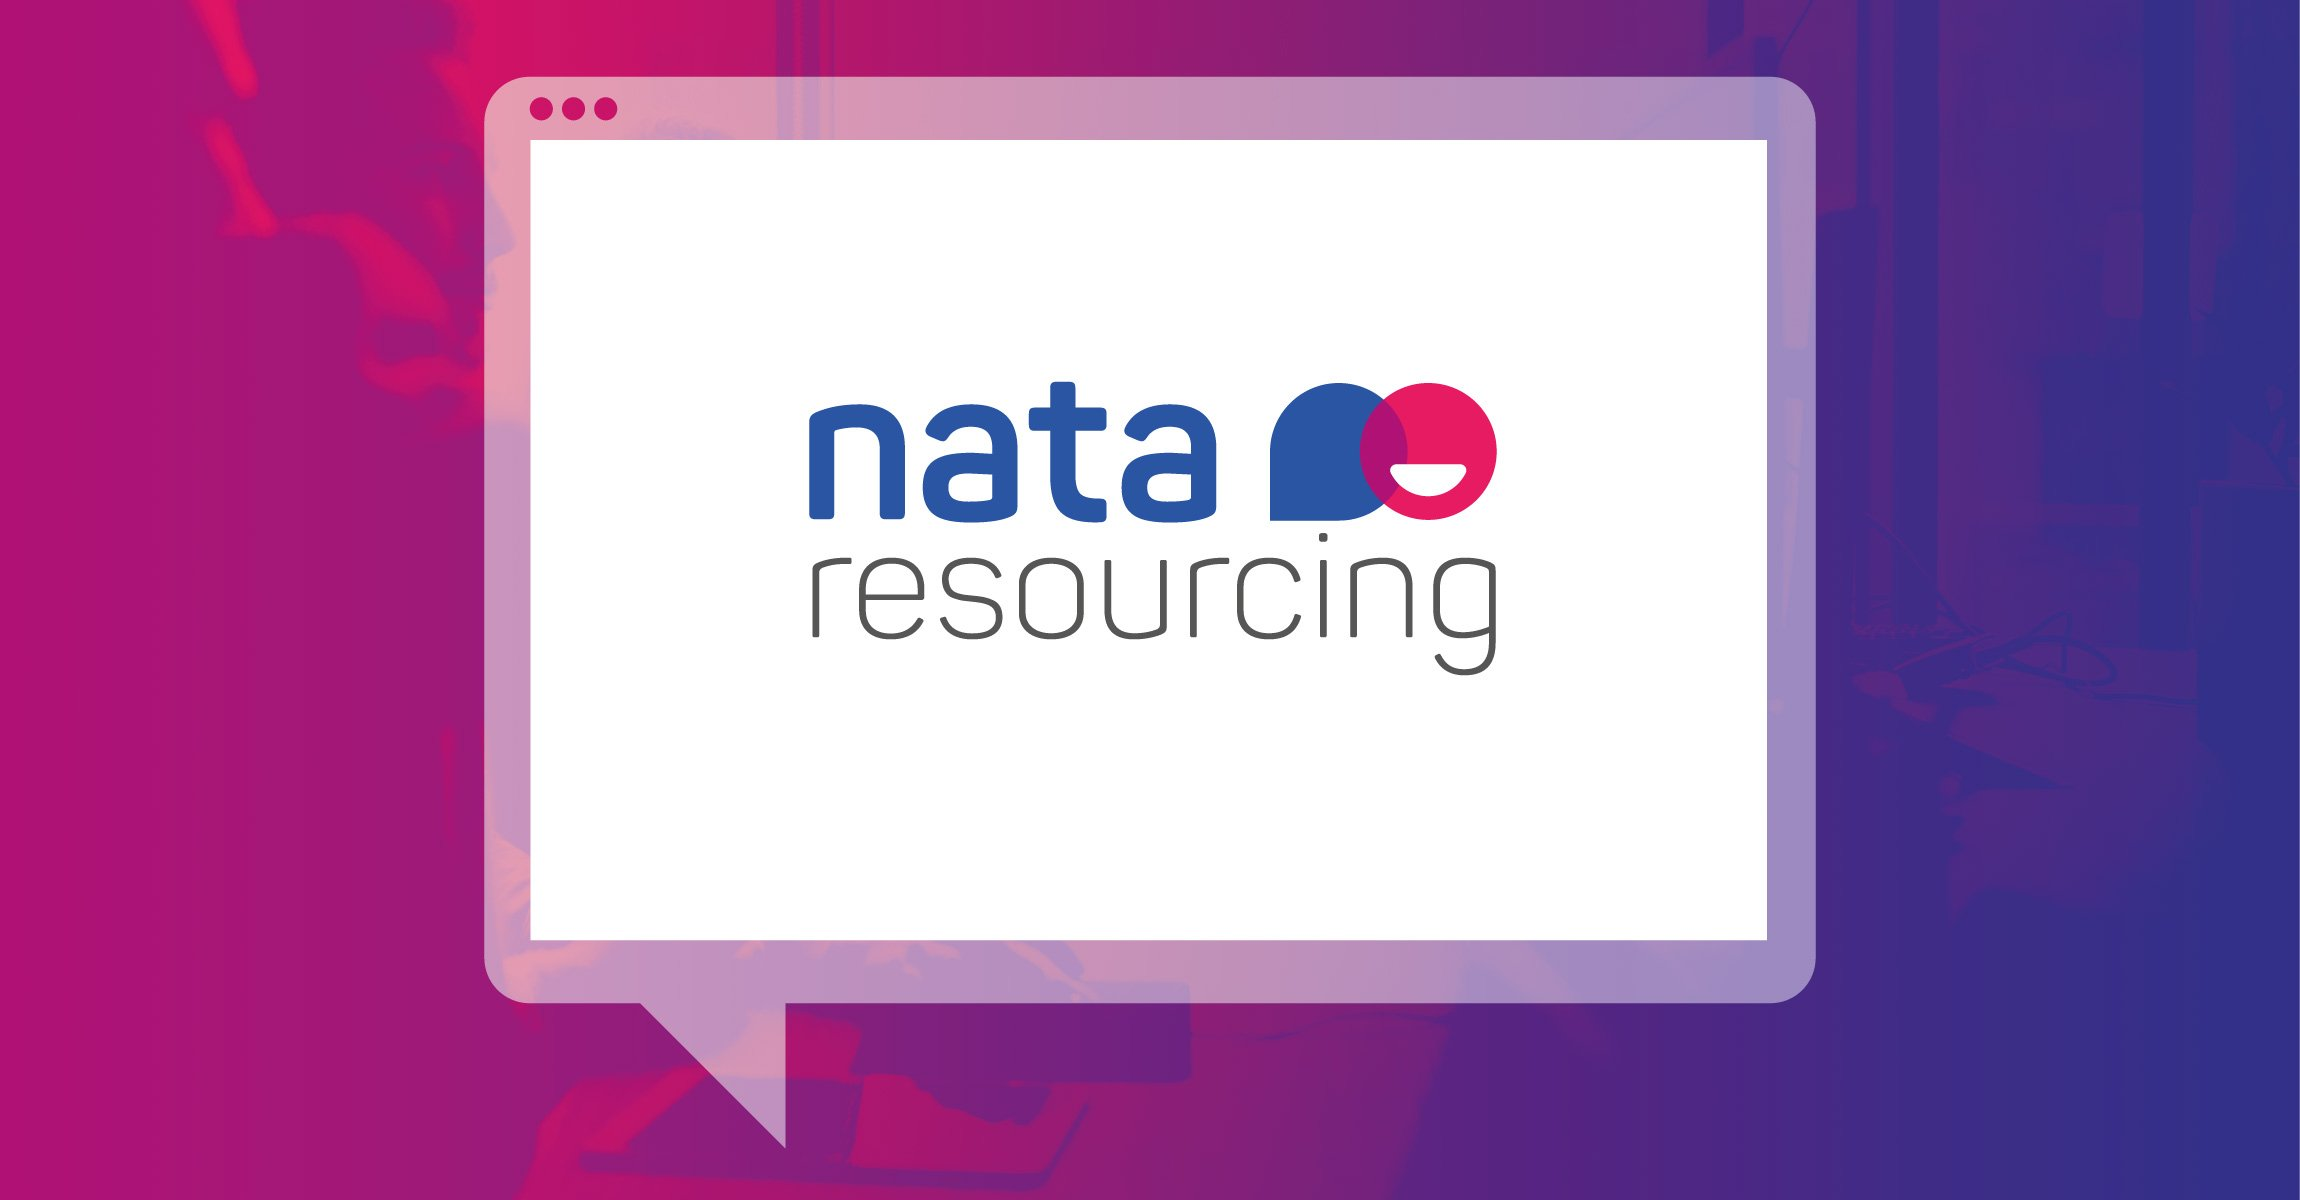 nata-resourcing-branding-by-Hooked-Design-and-Marketing